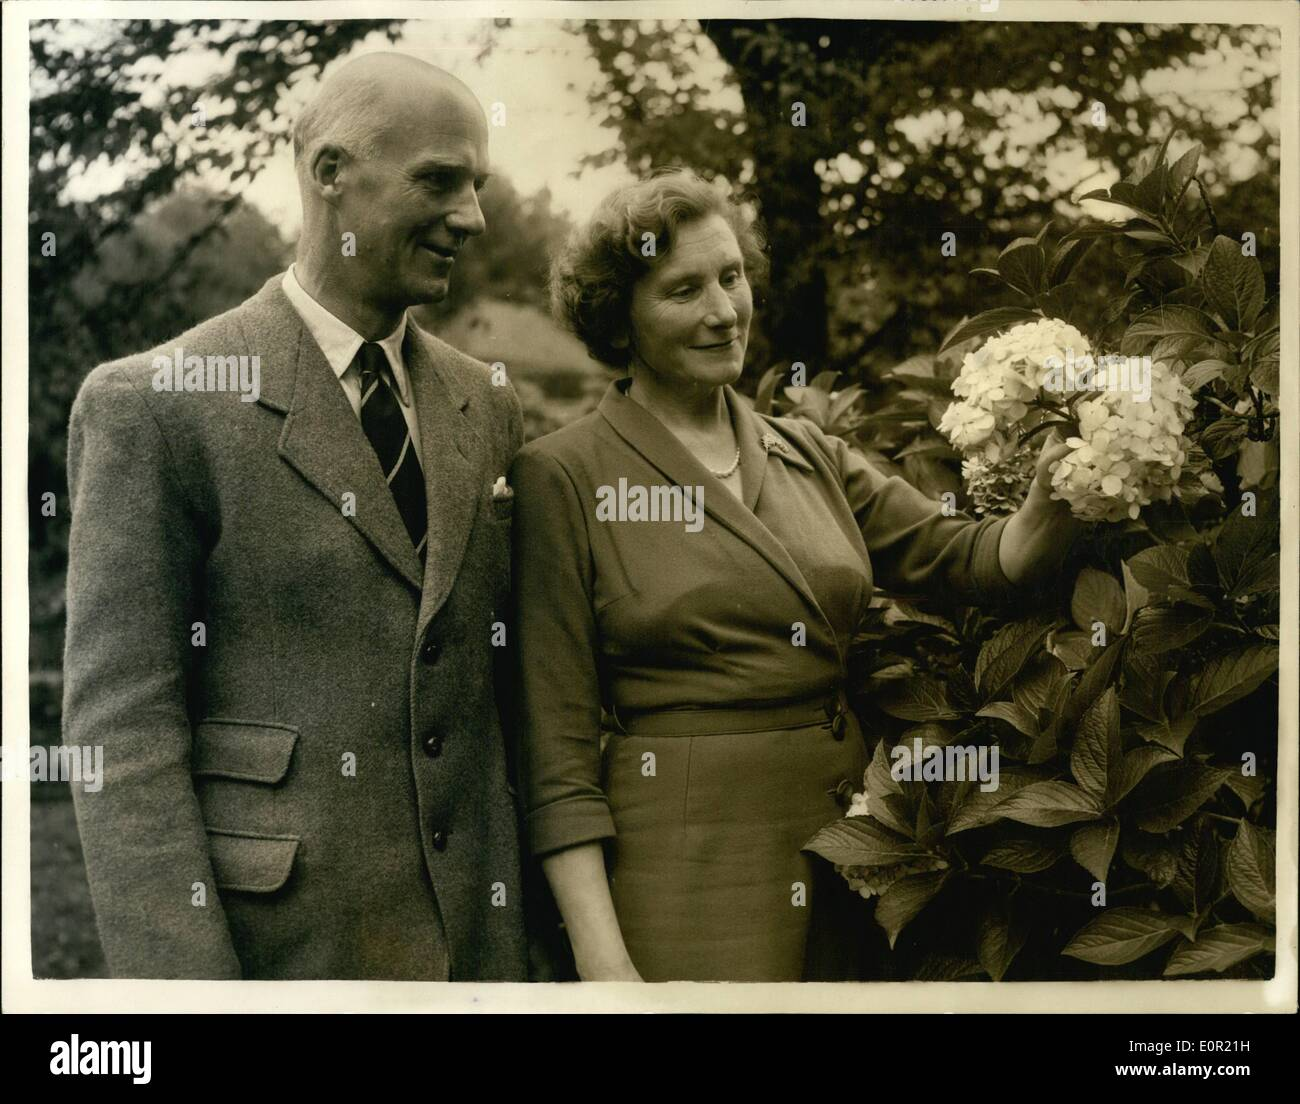 Sep. 09, 1957 - At the home with London's new Lord Mayor: Sir Denis Henry Truscott was elected Lord Mayor of London at Guildhall Saturday. He is the third member of the family to hold the office, and succeeds Sir Cullum Welch, Sir Denis, who is 49, and was married in 1932, has four daughters, and lives at Wimbledon. He is a keen musician and became a member of the Musicians' company when only 18. In August 1955 he was appointed the new Master of the Vintners Company. He is head of a City printing firm founded in 1824 by his great-grand-father - Stock Image